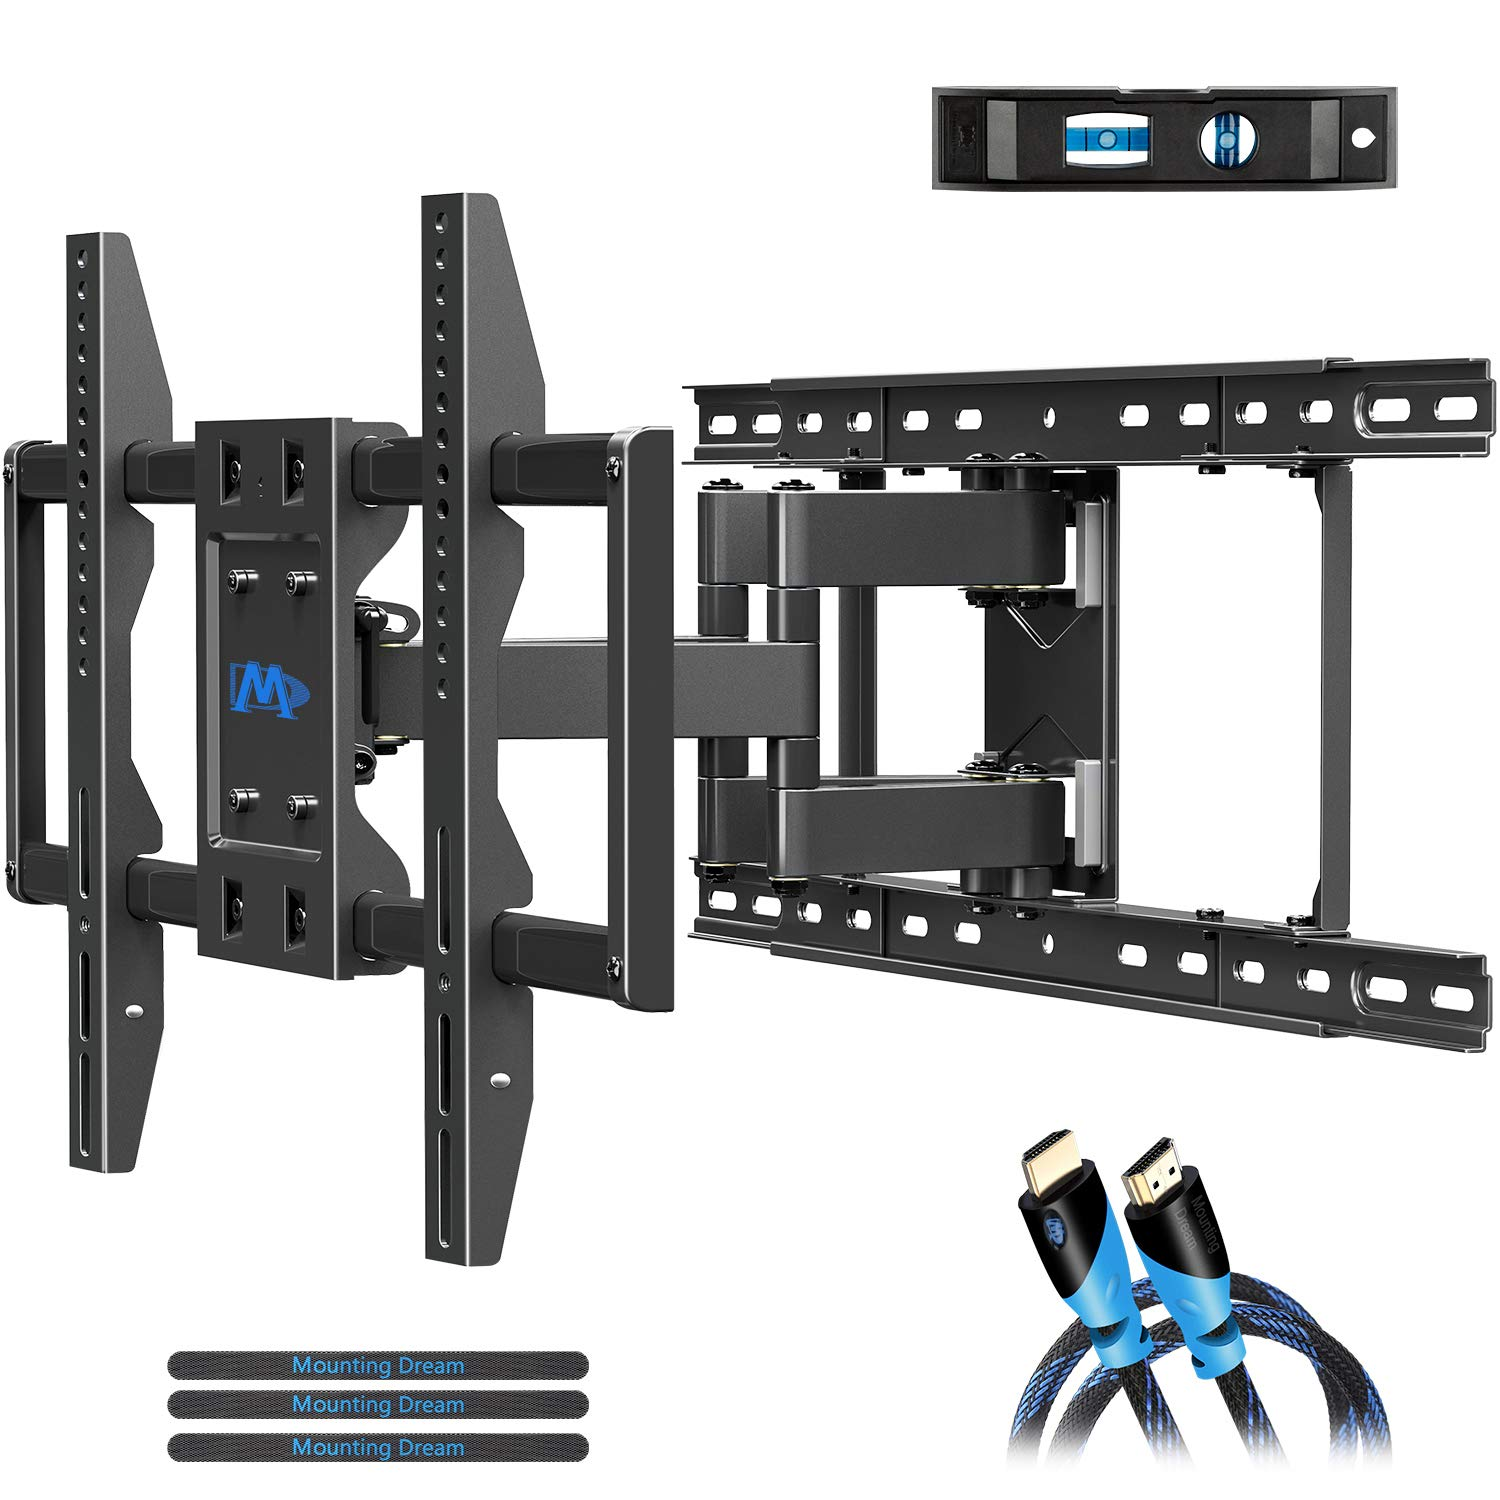 Mounting Dream TV Wall Mounts TV Bracket for 42-70 Inch TVs, Premium TV Mount, Full Motion TV Wall Mount with Articulating Arms, Max VESA 600x400mm and 100 LBS, Fits 16'', 18'', 24'' Studs MD2296-24K by Mounting Dream